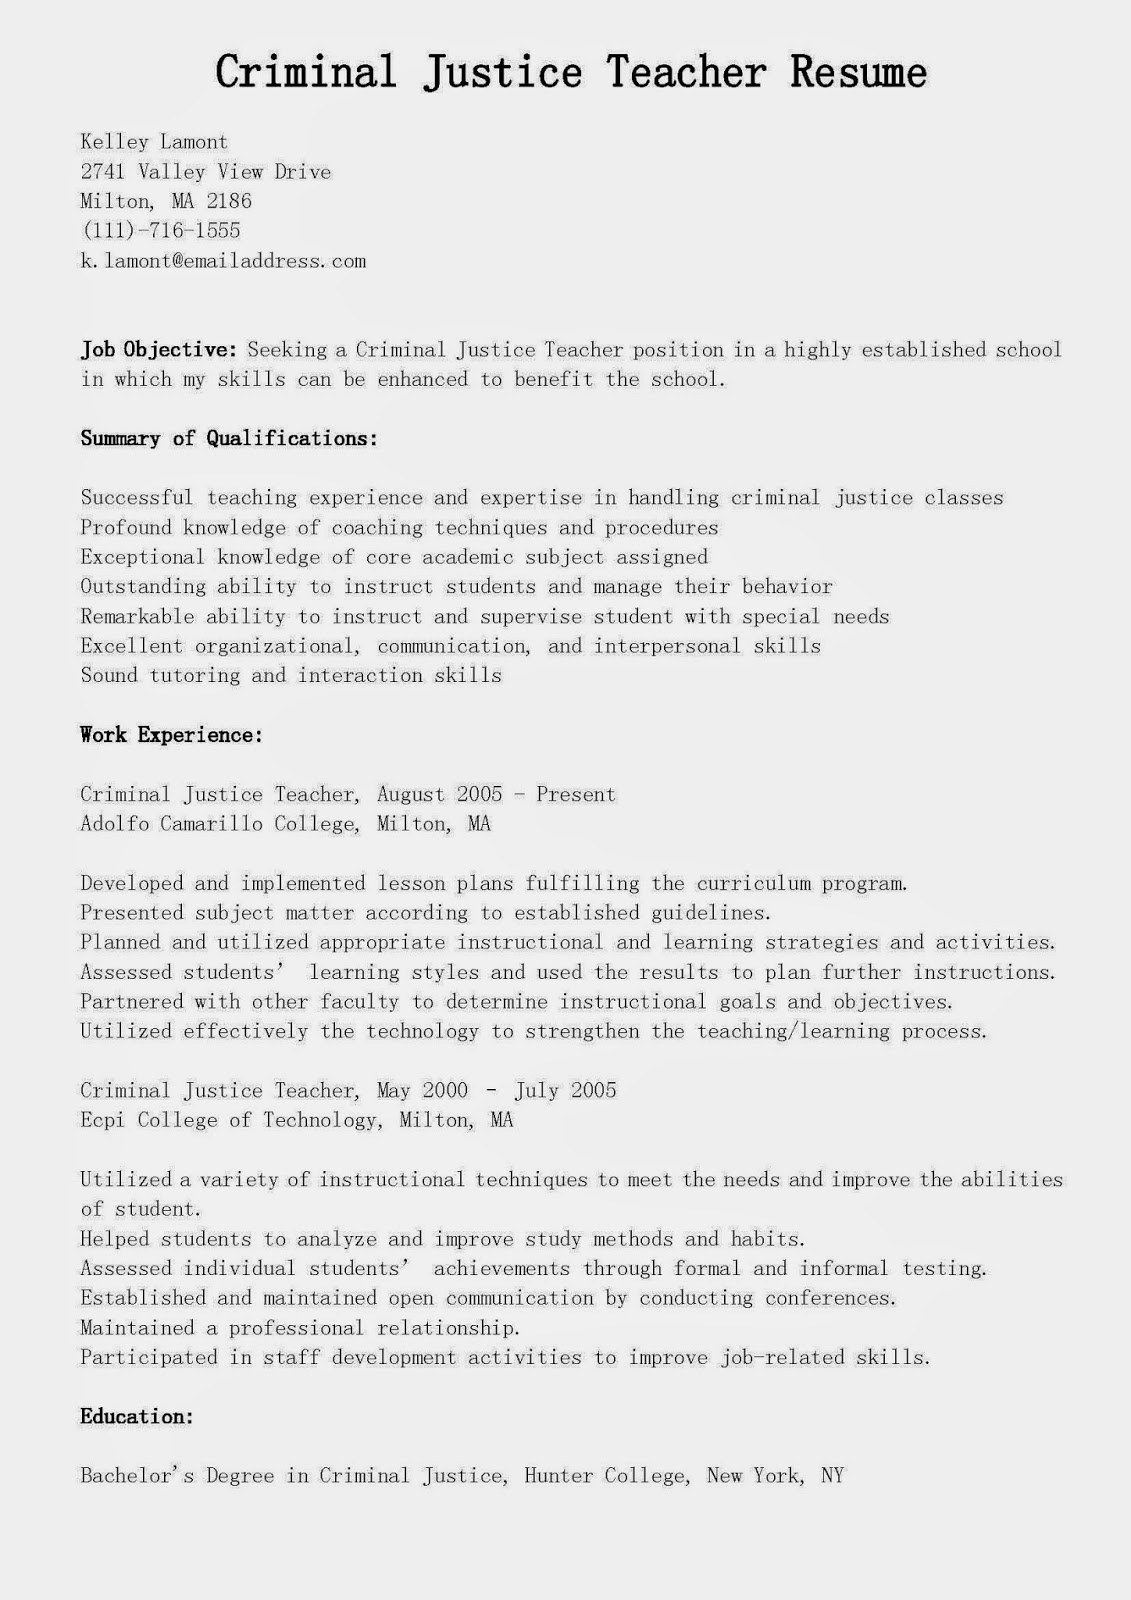 009 Criminaljusticeteacherresume Essay Example Fascinating Justice To Kill A Mockingbird And Injustice Criminal Scholarship Examples Introduction Full